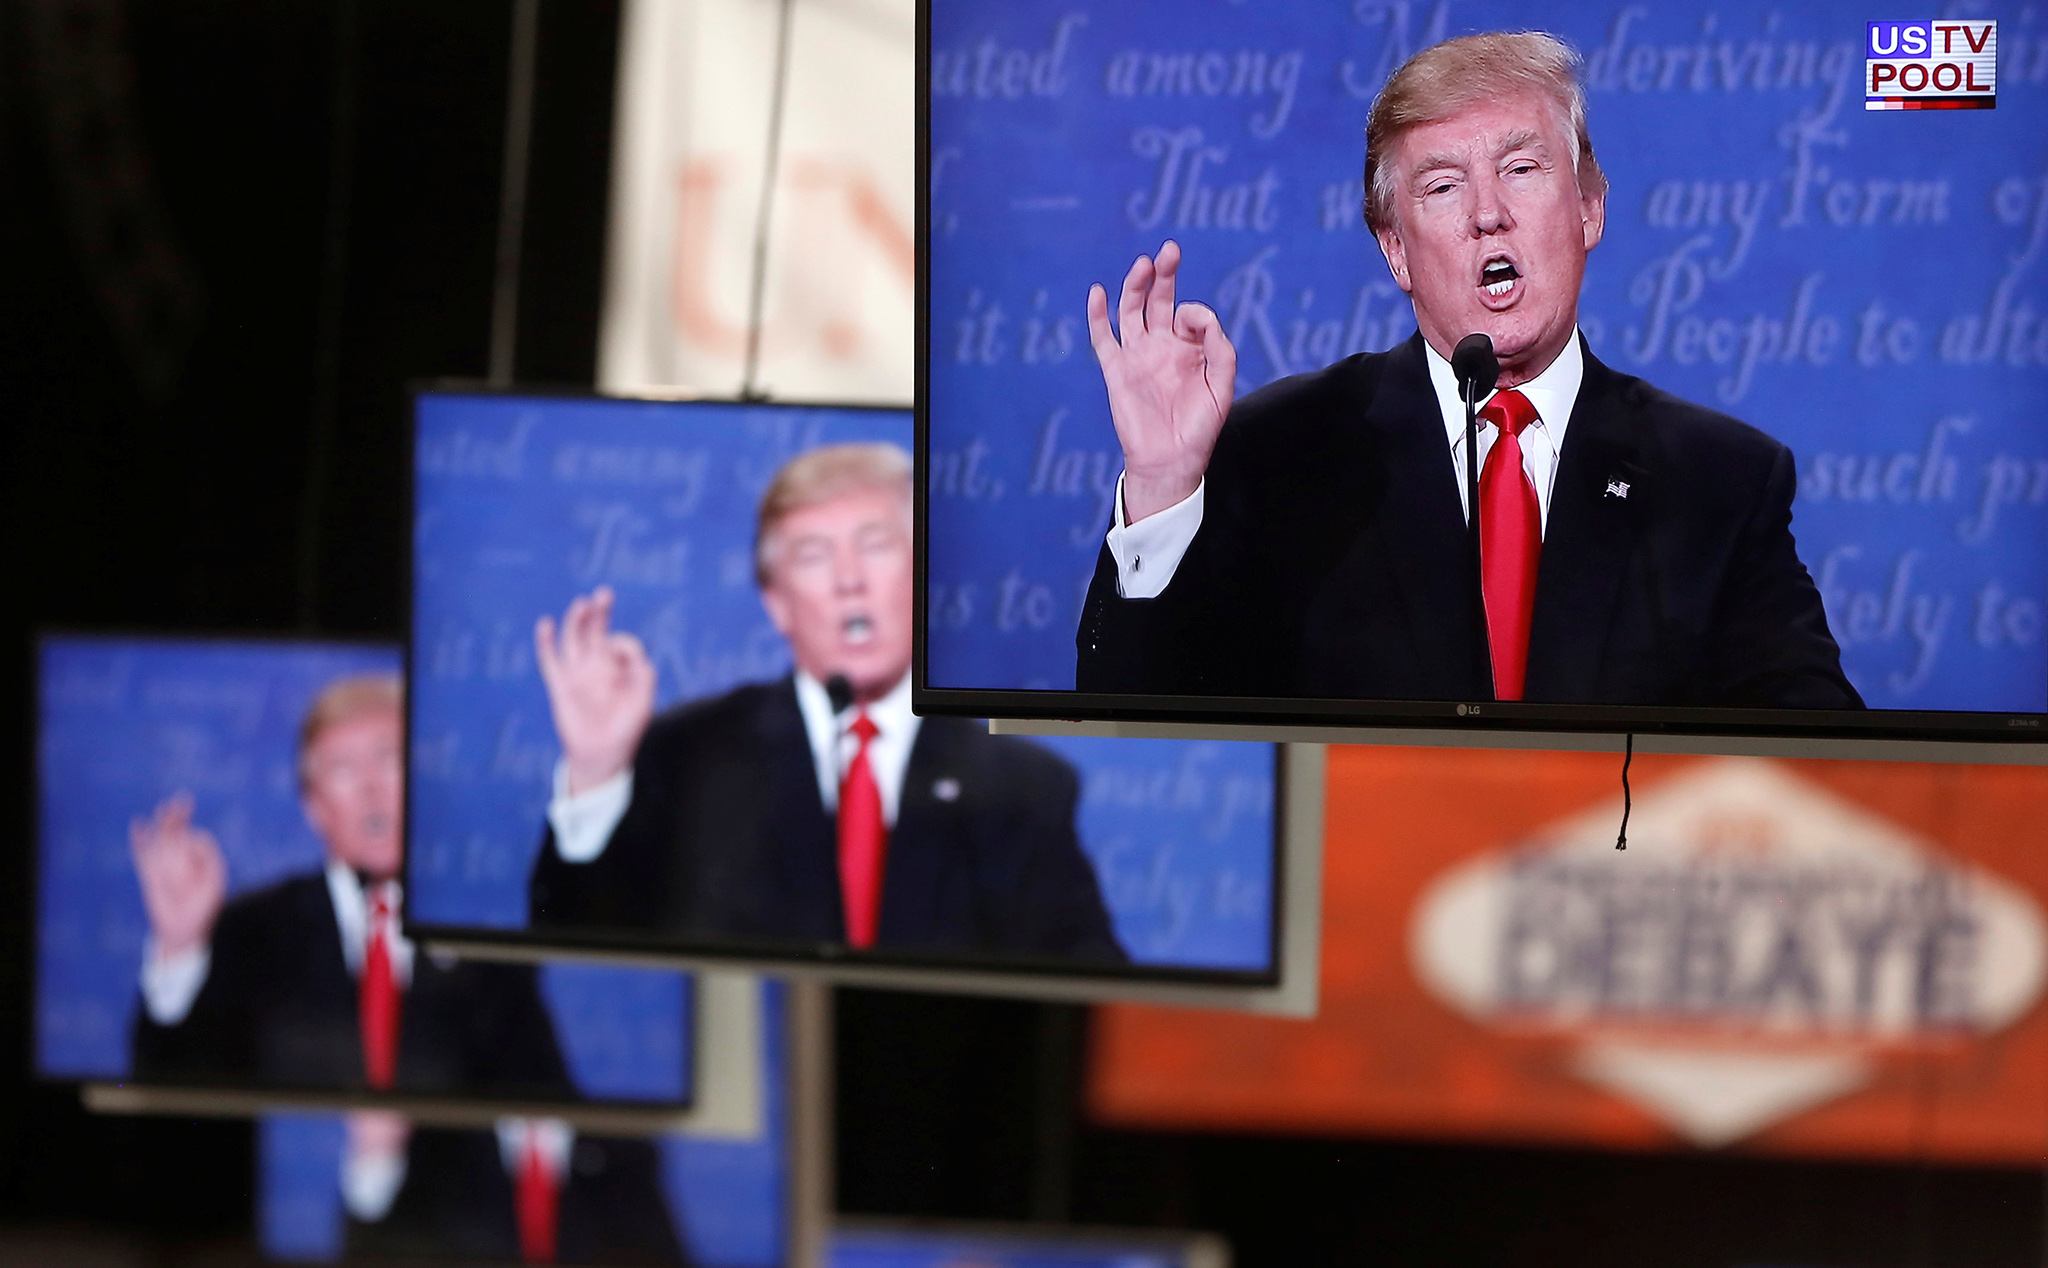 Republican U.S. presidential nominee Donald Trump is shown on TV monitors in the media filing room on the campus of University of Nevada, Las Vegas, during the last 2016 U.S. presidential debate in Las Vegas, U.S., October 19, 2016. REUTERS/Jim Urquhart TPX IMAGES OF THE DAY